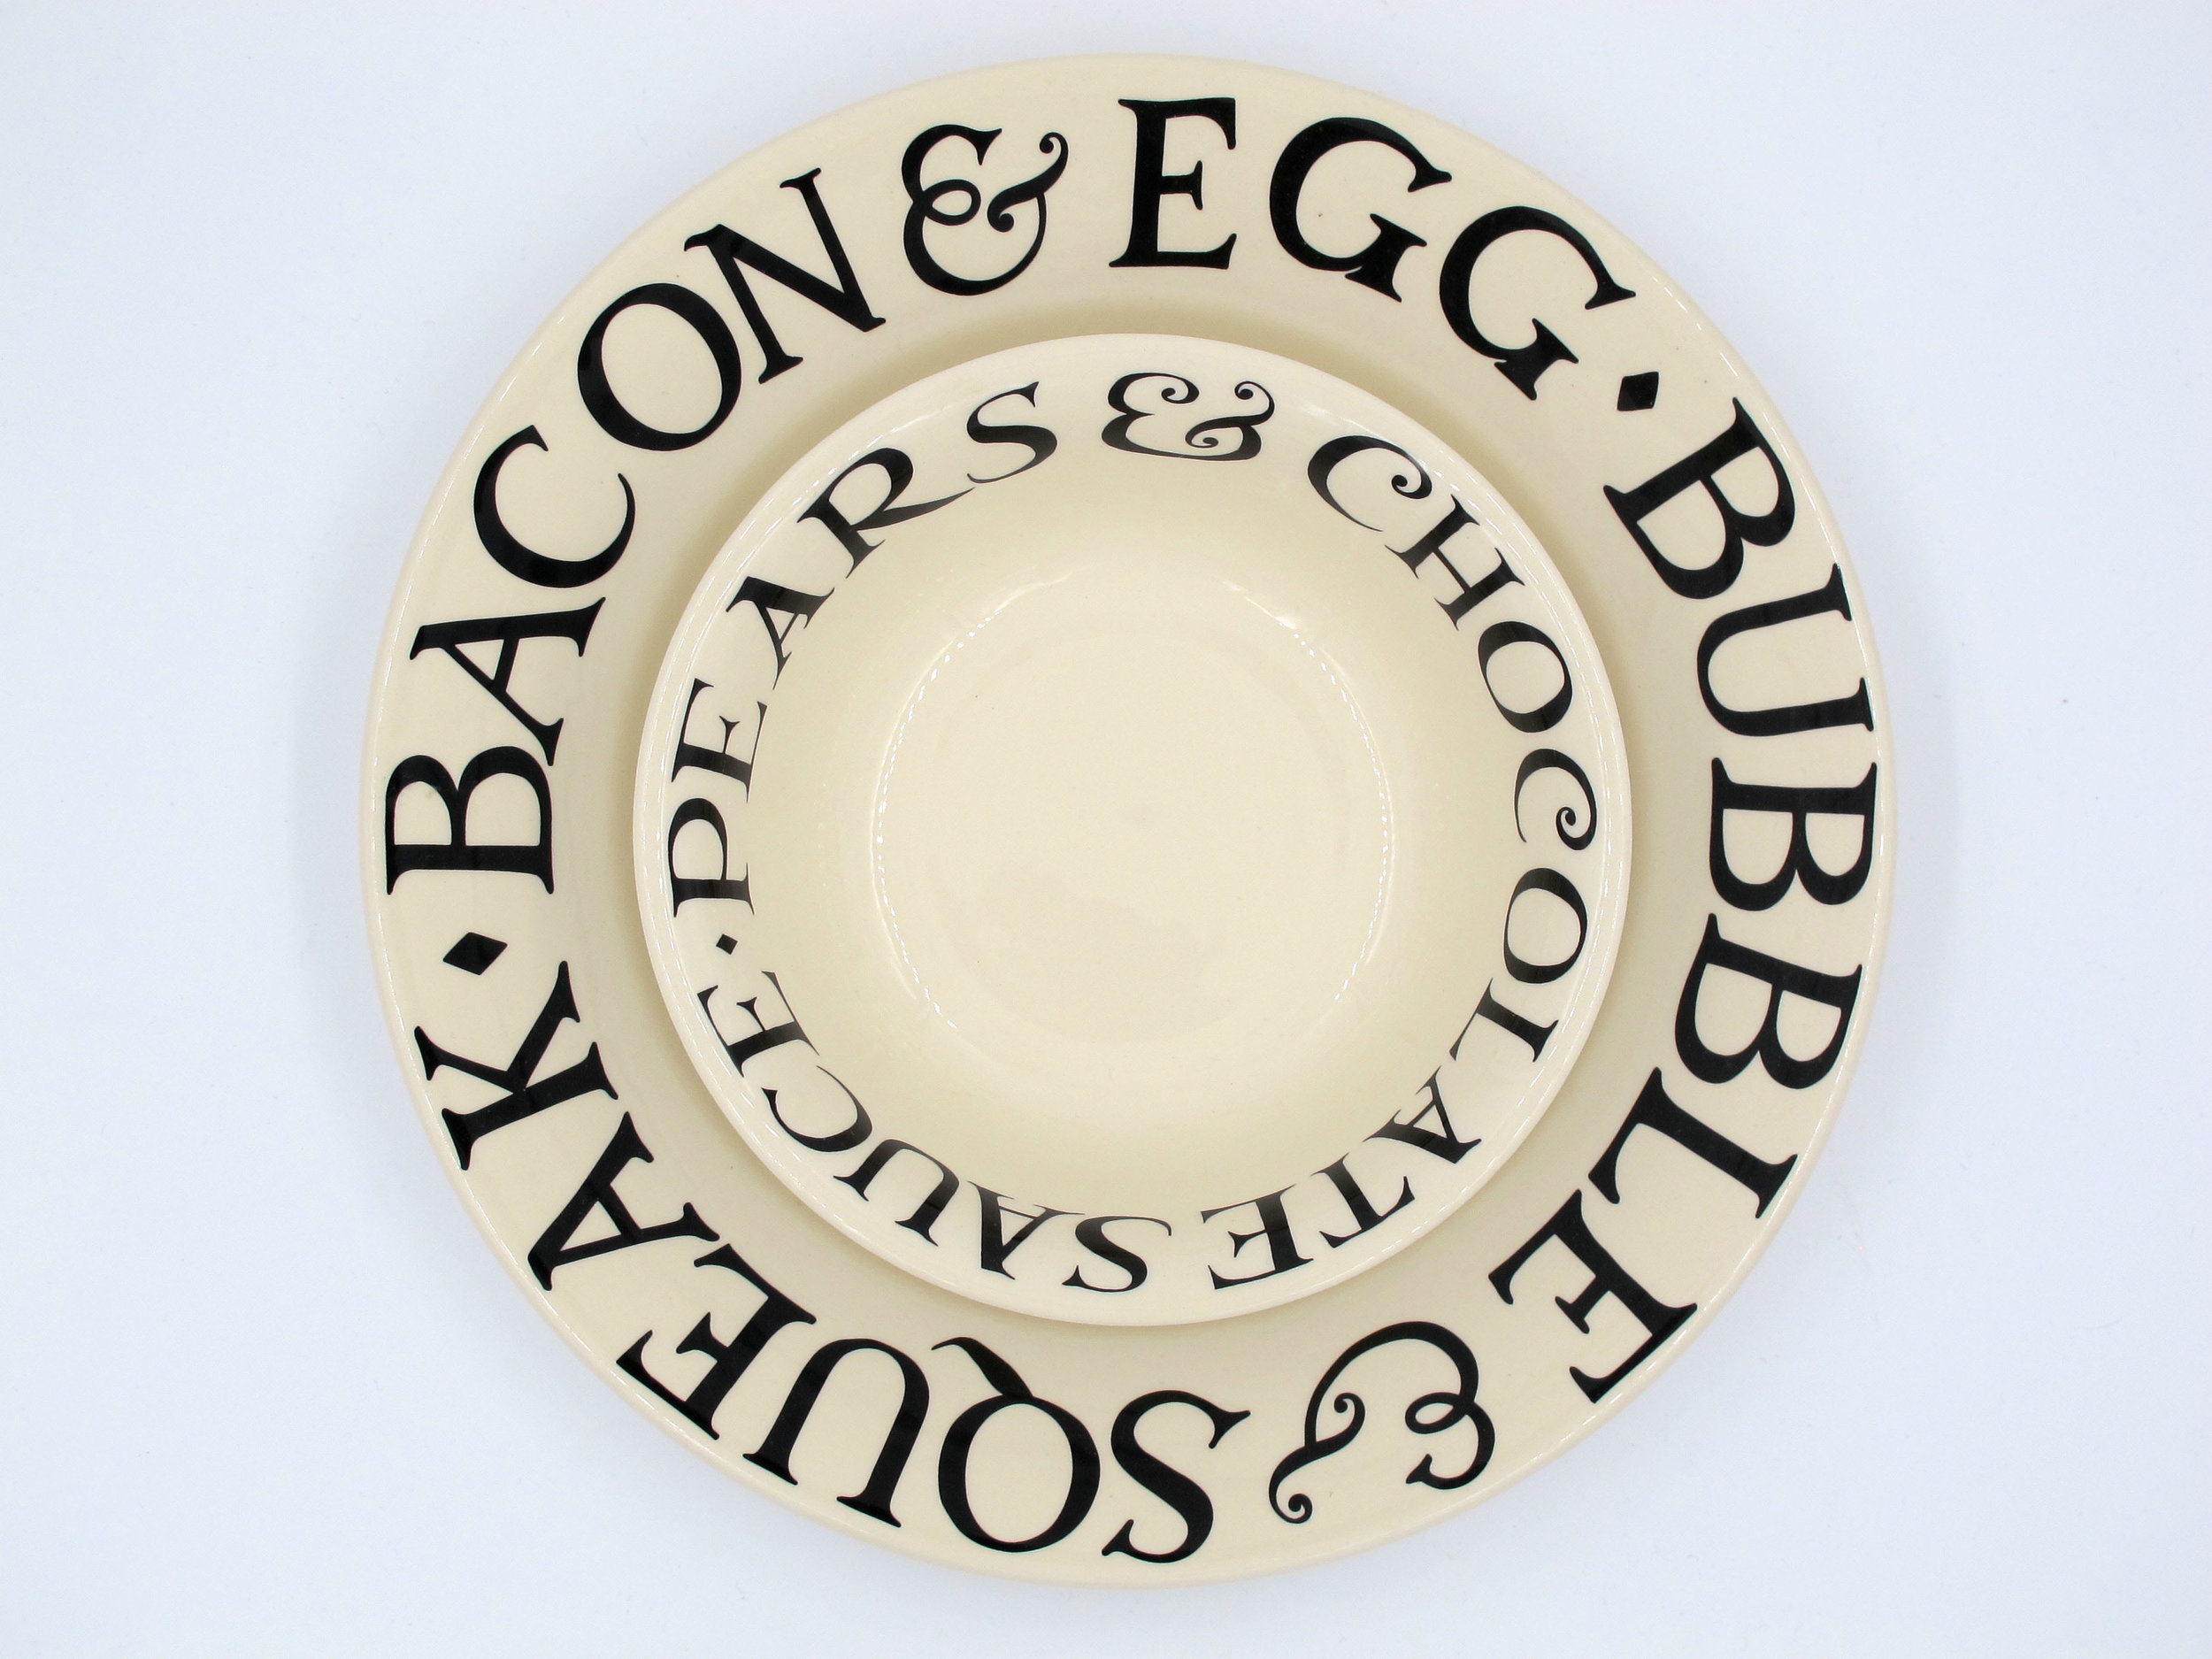 We stock a large range of Emma Bridgewater pottery and homeware.